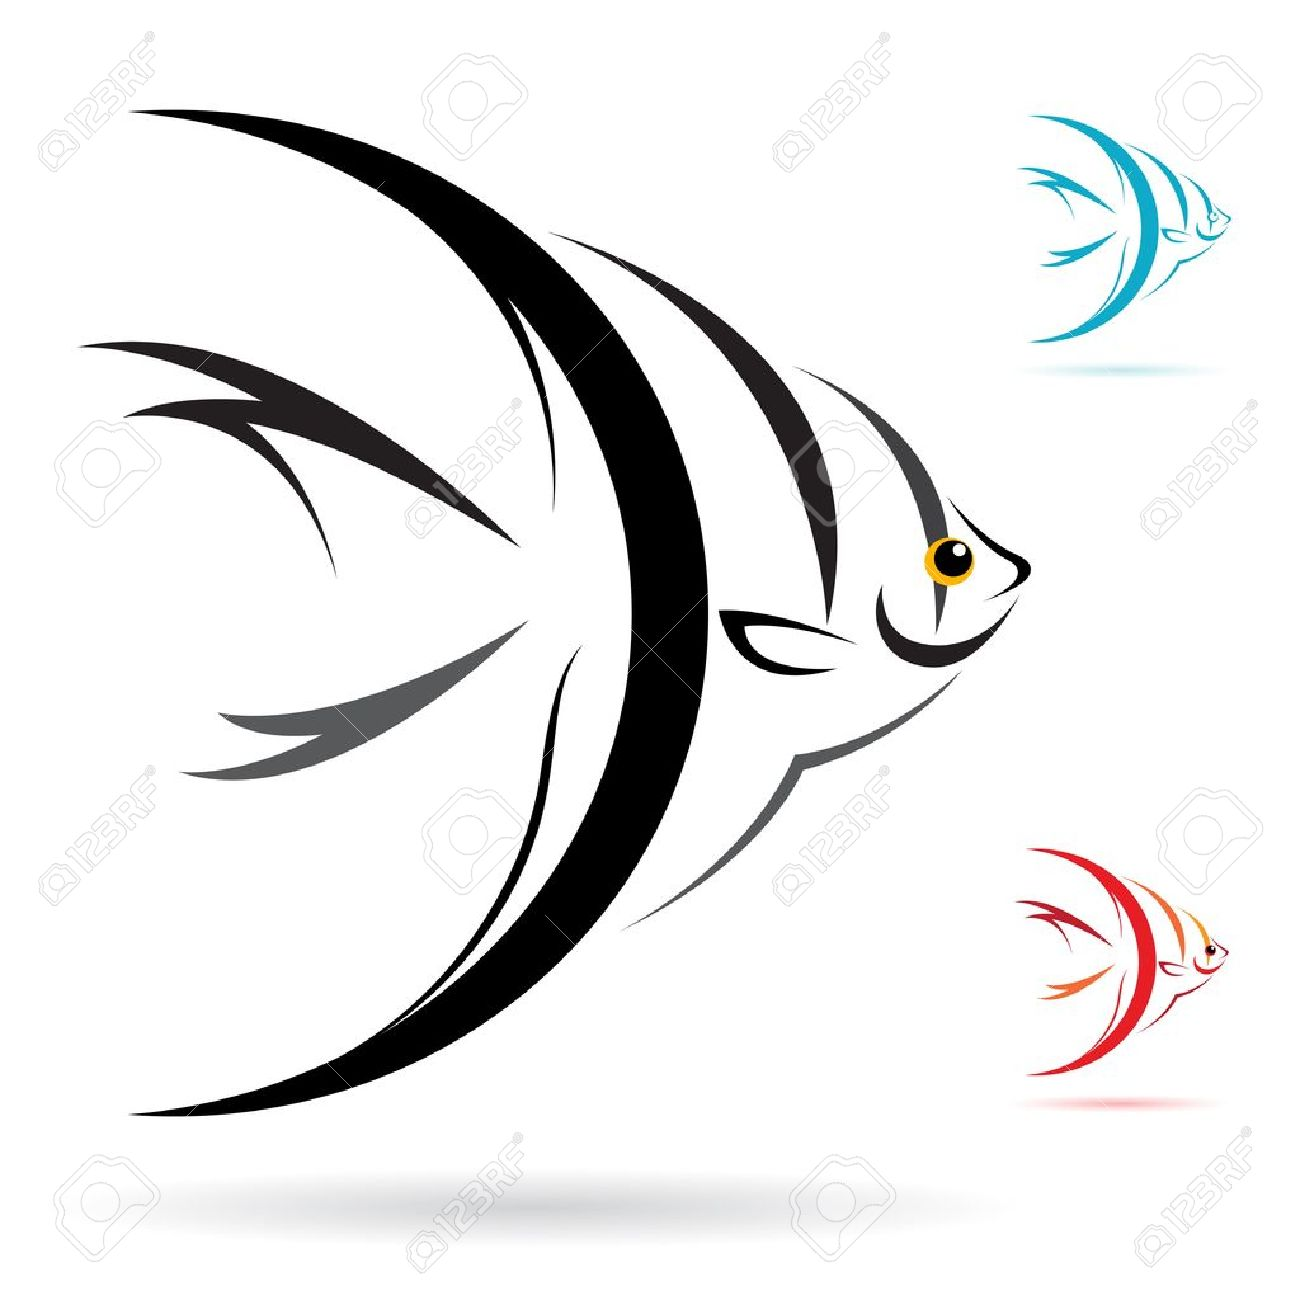 Angelfish clipart black and white And Angel Of Fish collection